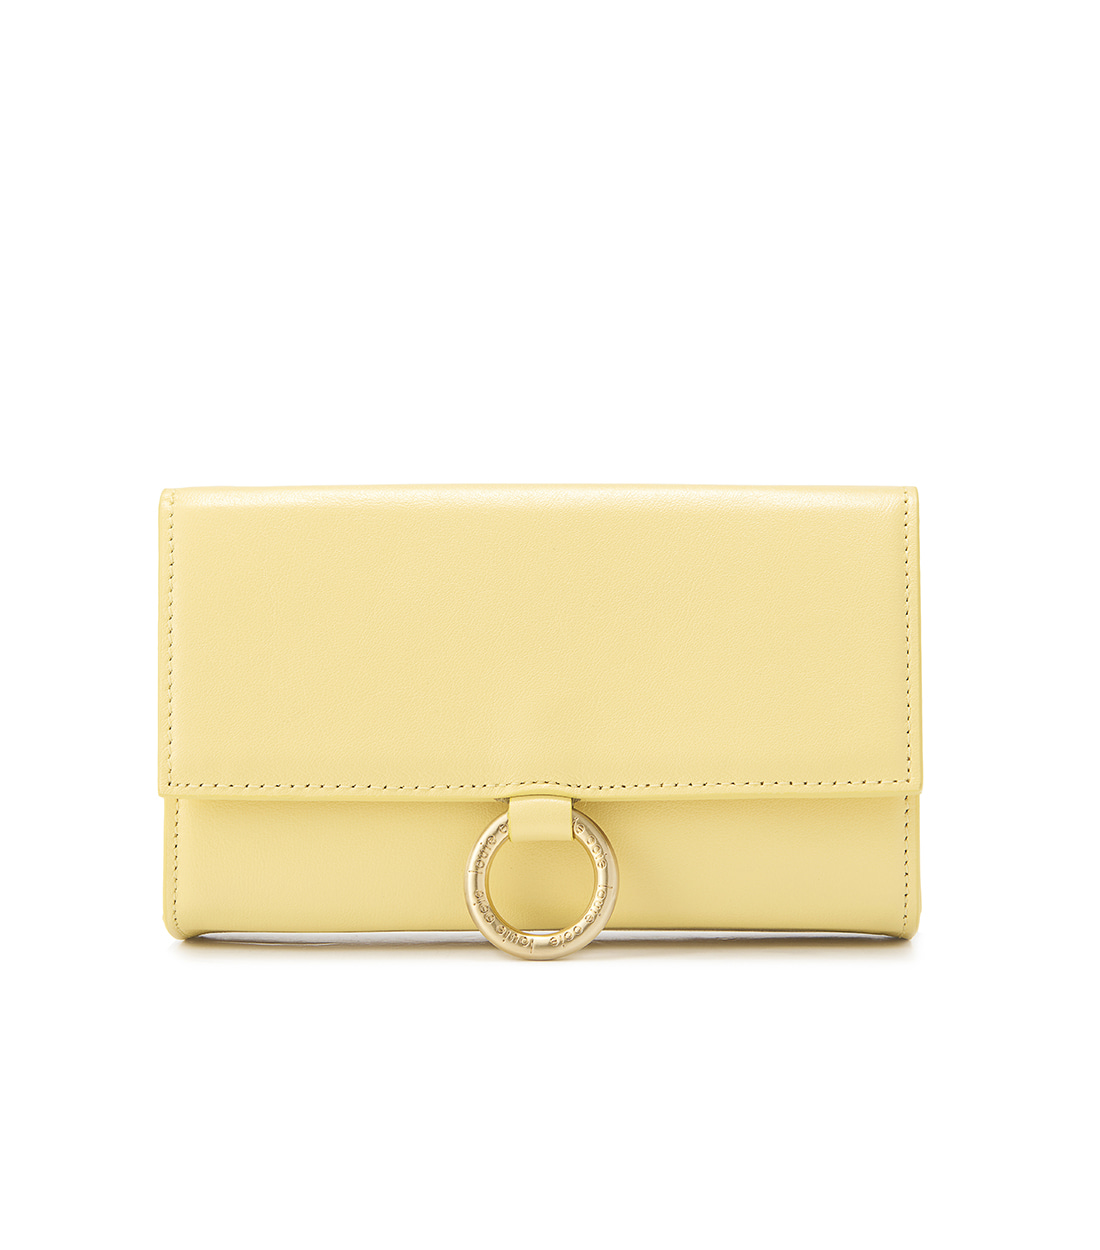 nina bag - lemon [refurb 60%]